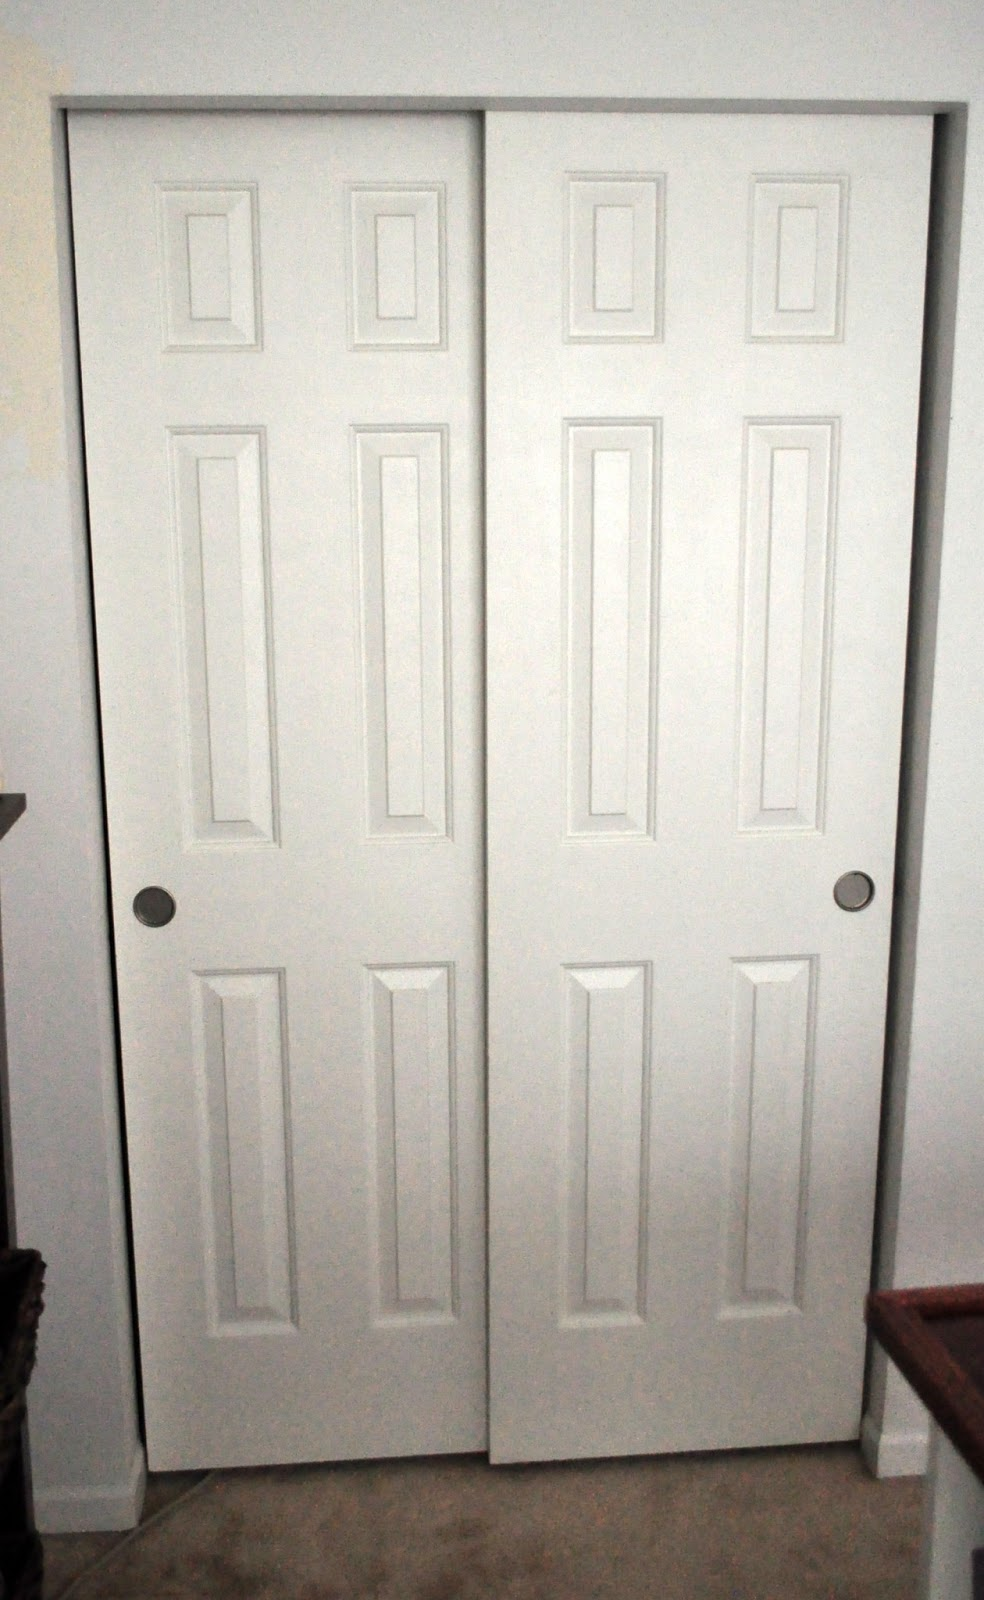 Updating Closet Doors